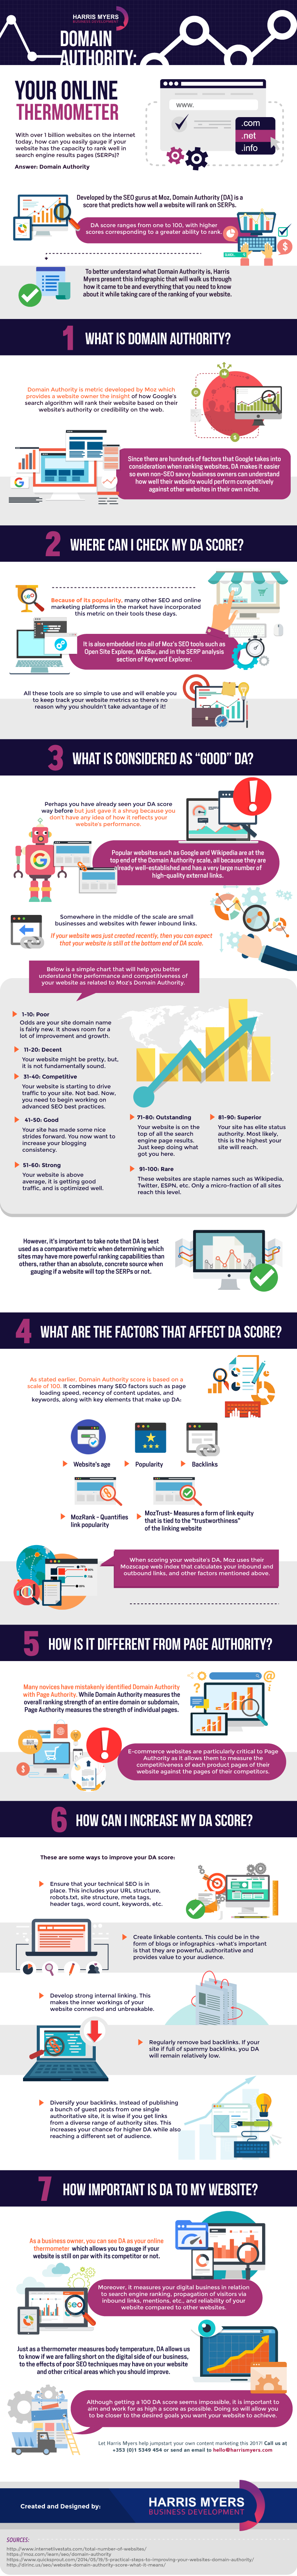 Domain Authority: Your Online Thermometer - #Infographic